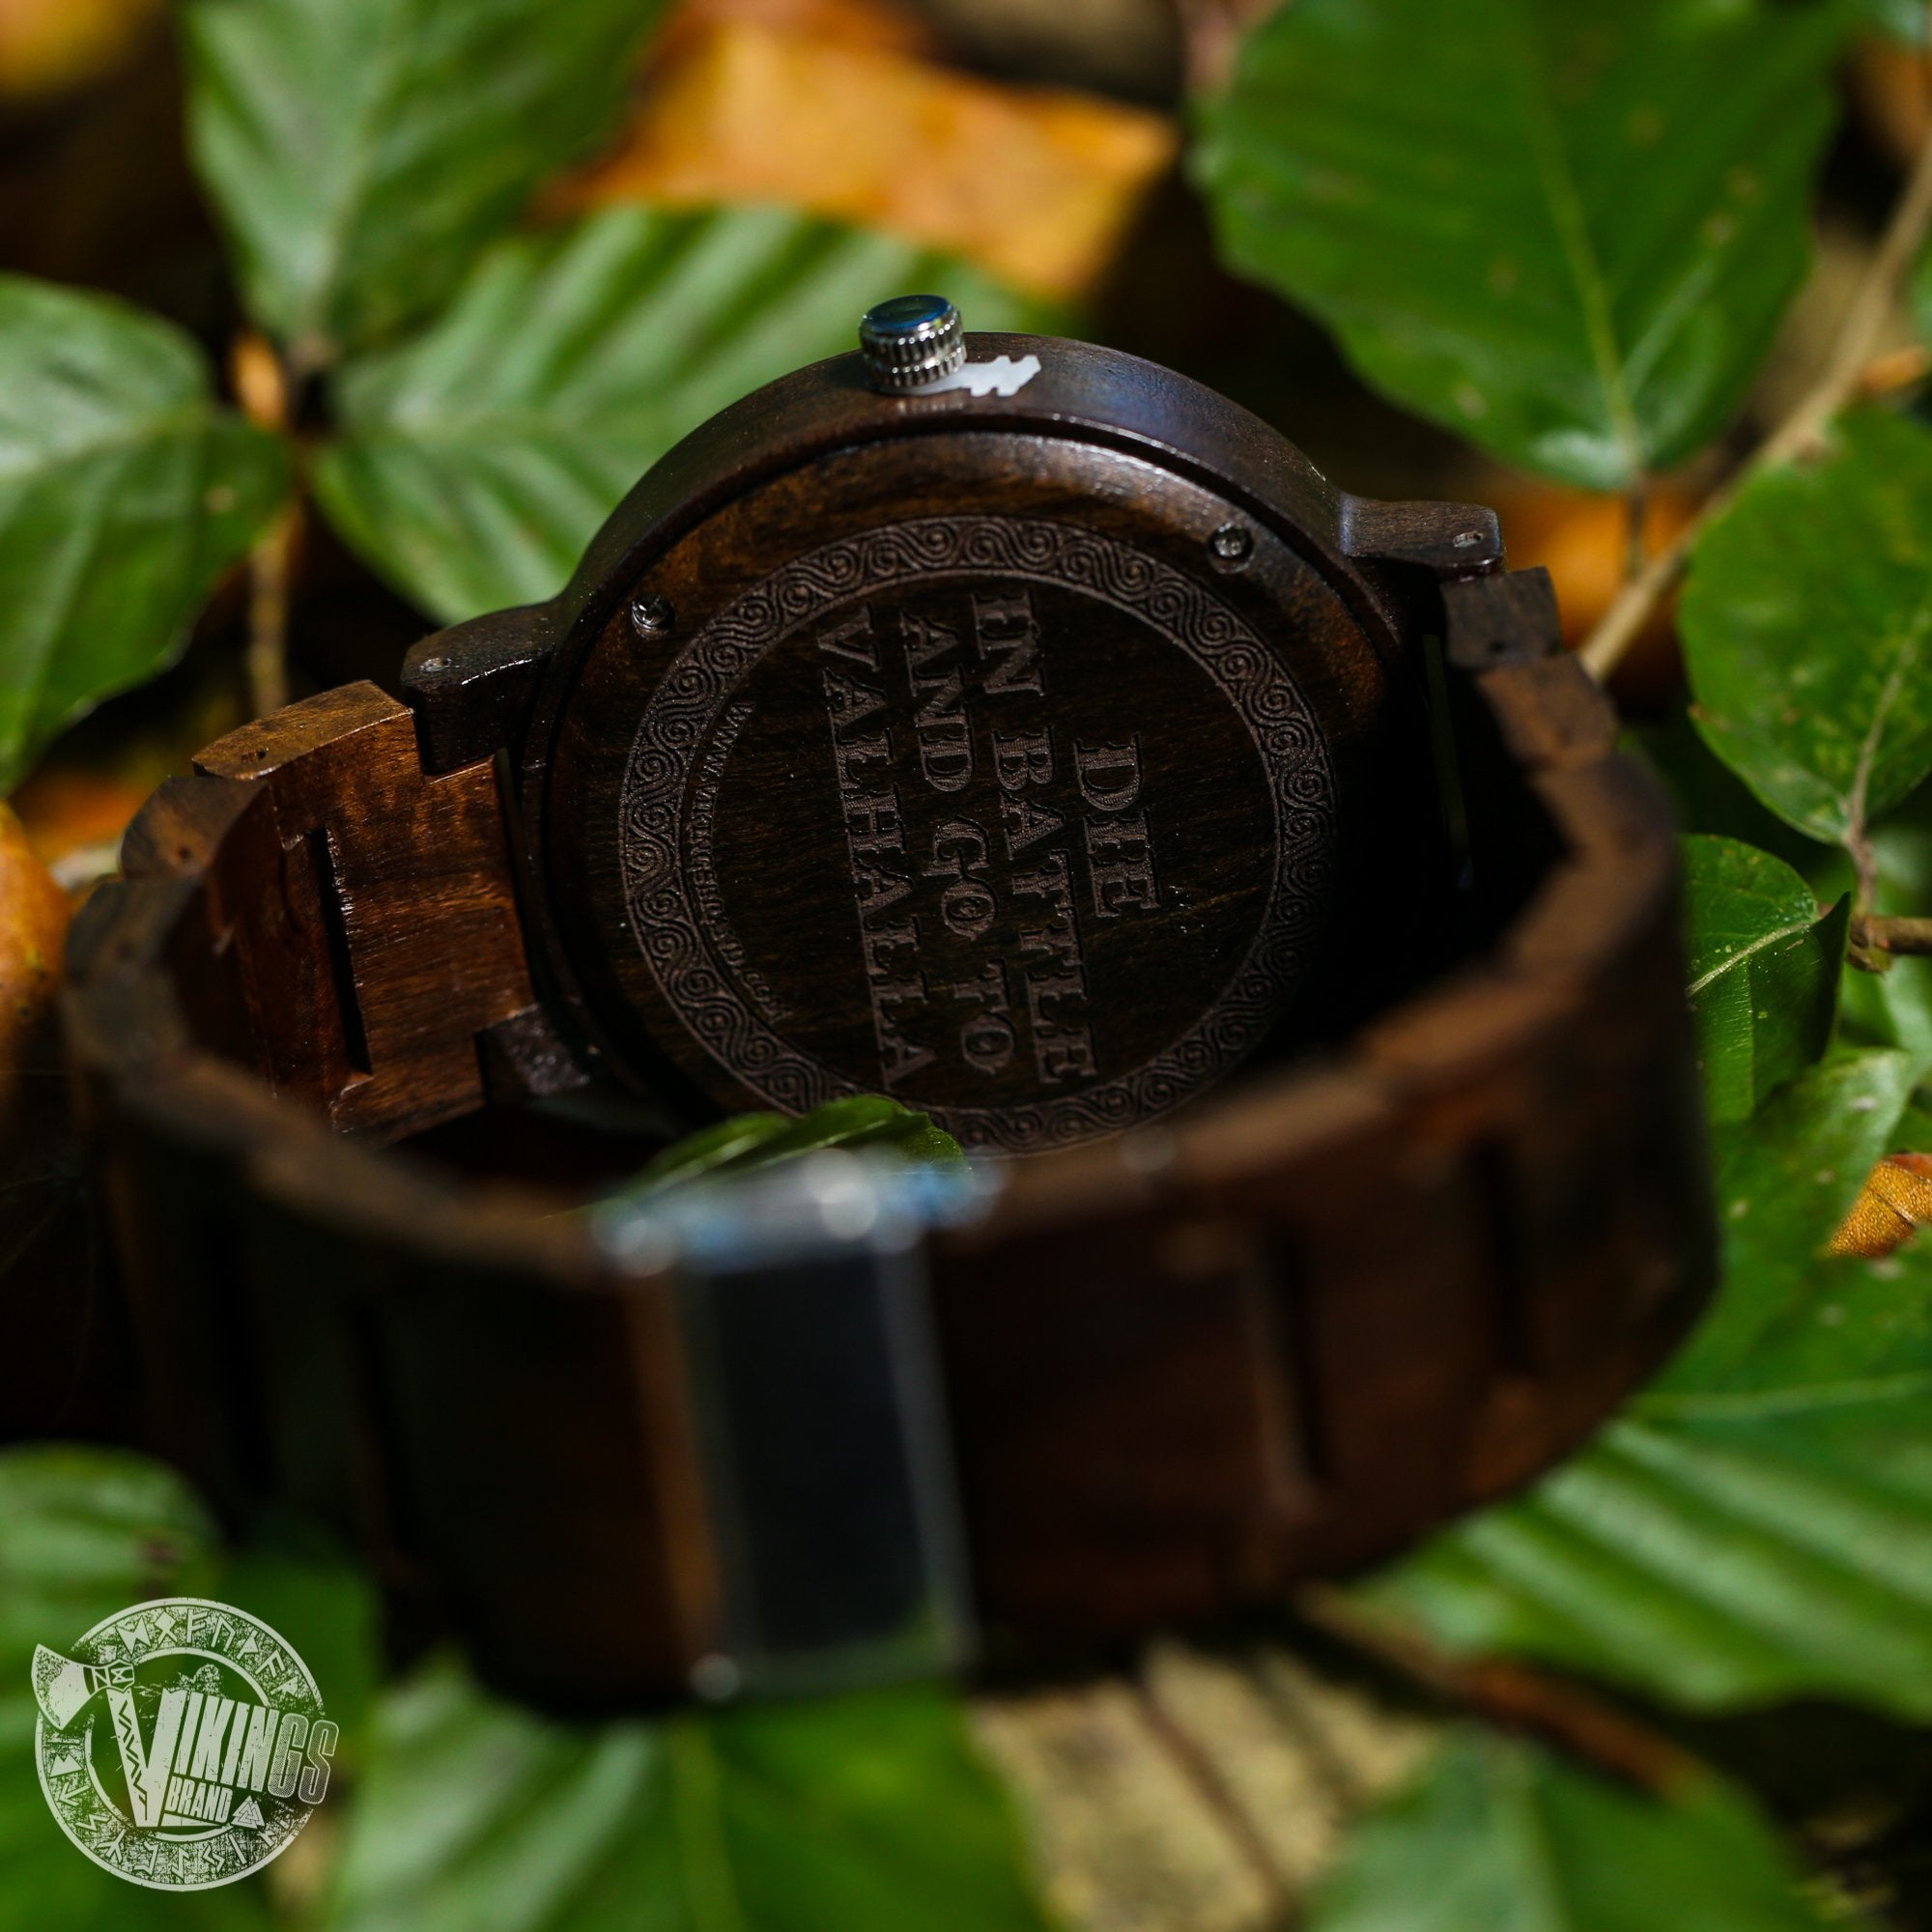 Bifrost Viking Wooden Watch with Helm of Awe Viking Symbol & Engraved Die in Battle & Go To Valhalla Saying - VikingsBrand